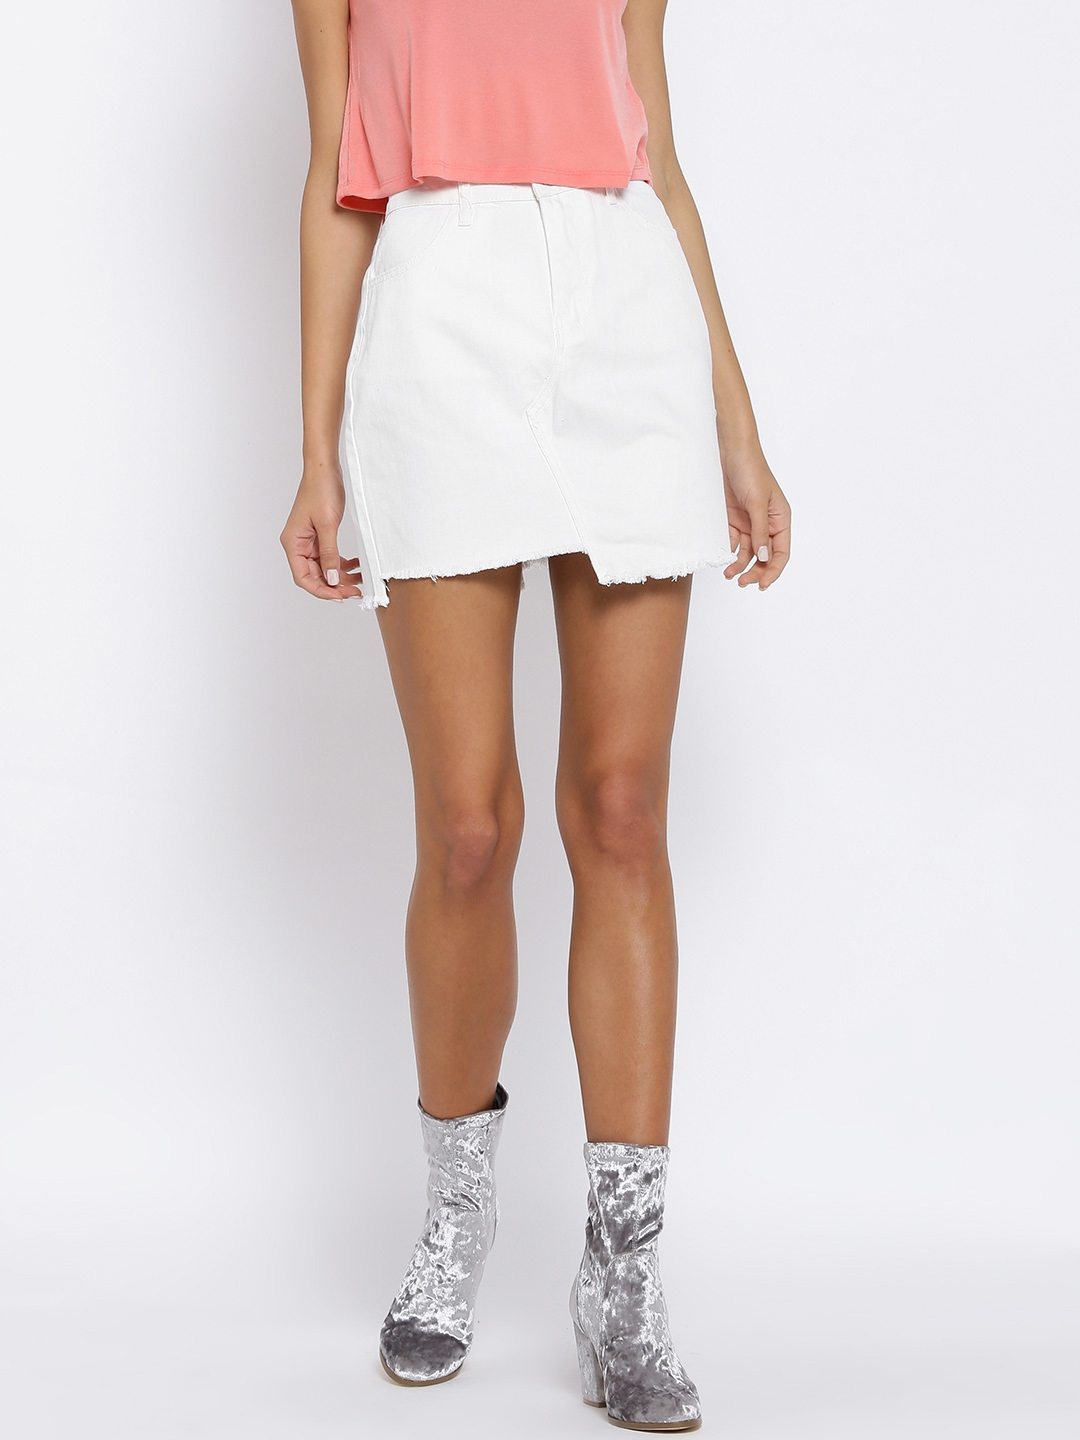 1e3577e8cd975 Buy FOREVER 21 White Denim Mini Skirt - Skirts for Women 2360500 ...